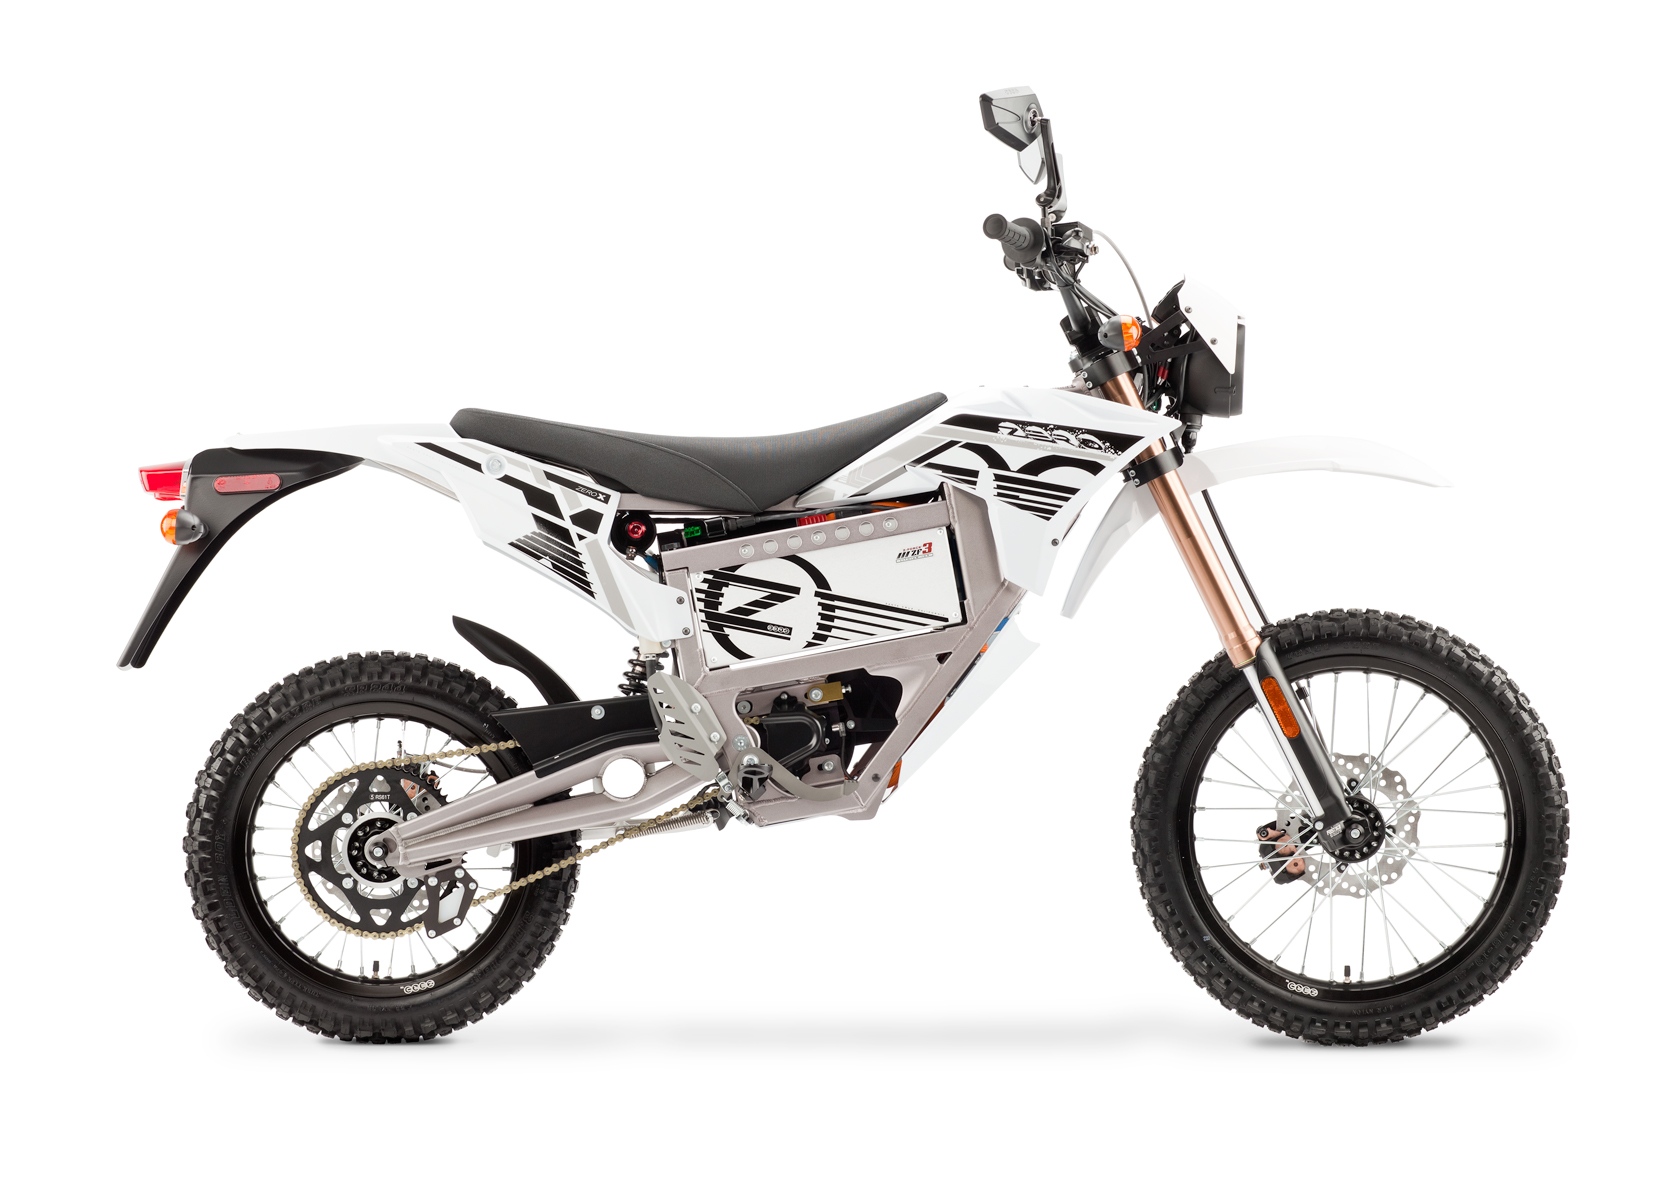 '.2012 Zero X Electric Motorcycle: Profile Right, White Background.'